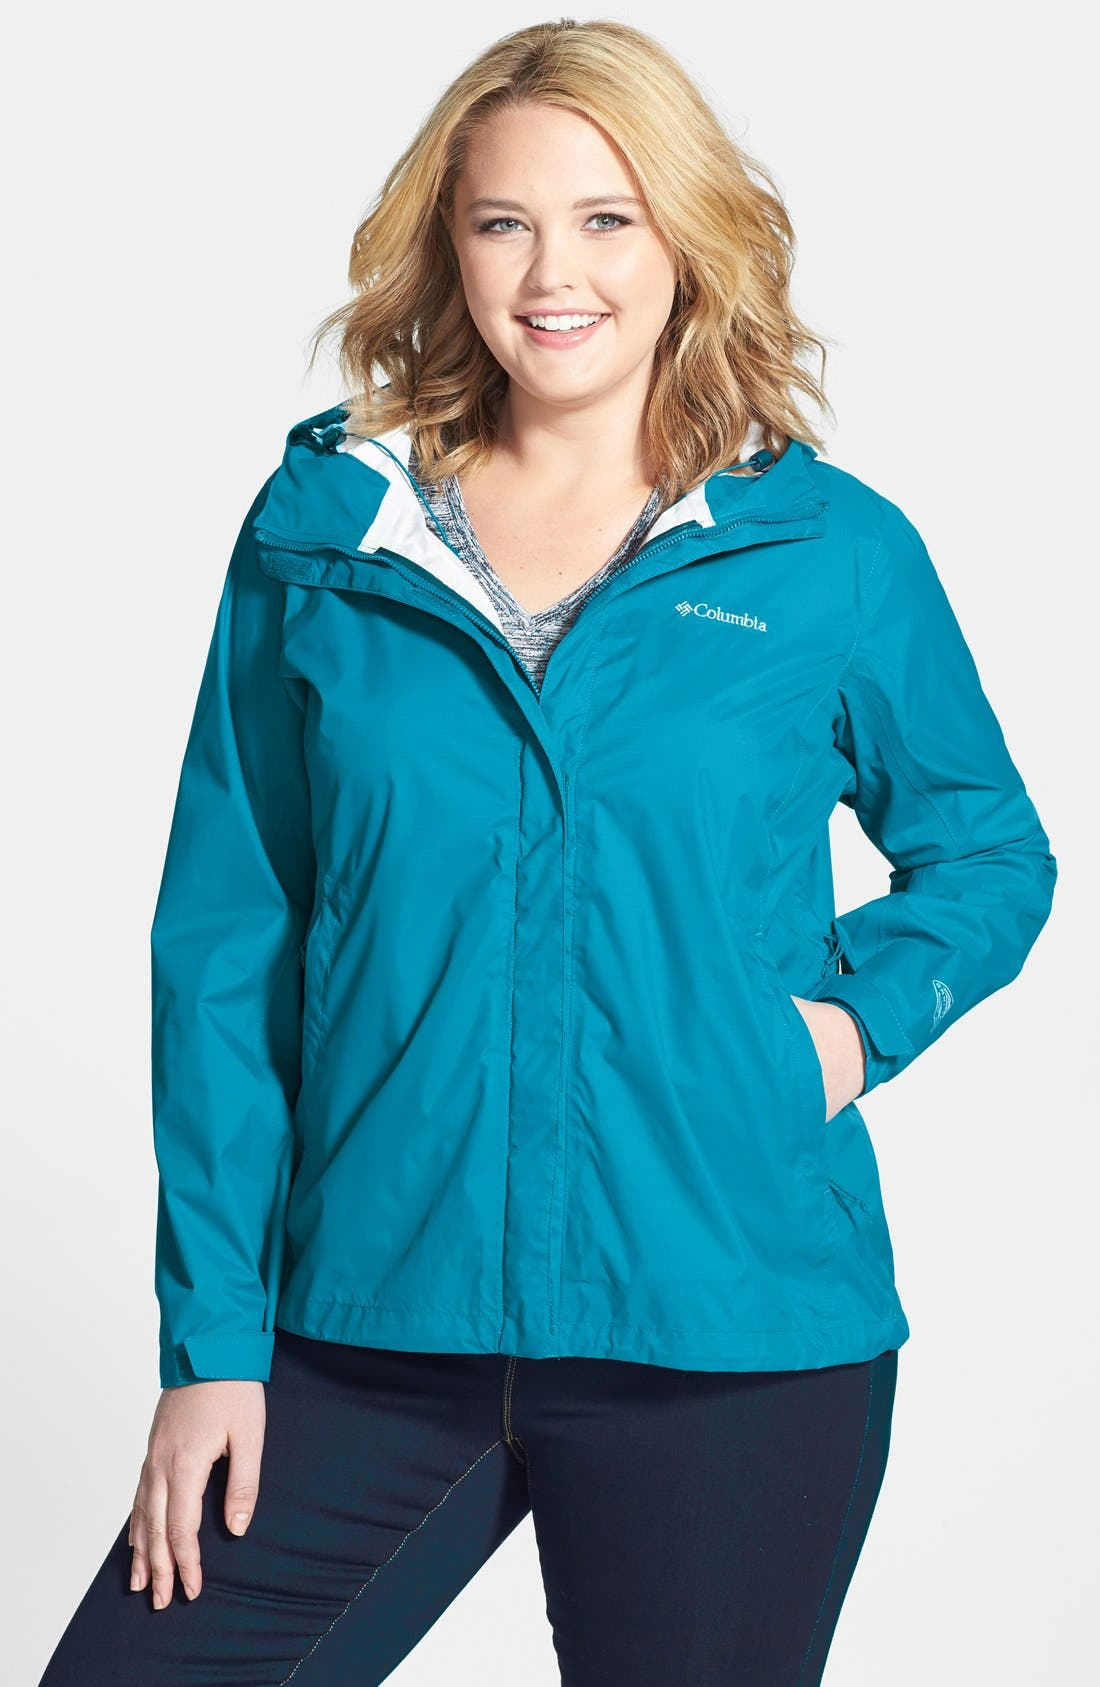 Alternate Image 1 Selected - Columbia Sportswear Company® 'Reign Stopper' Waterproof Jacket (Plus Size)